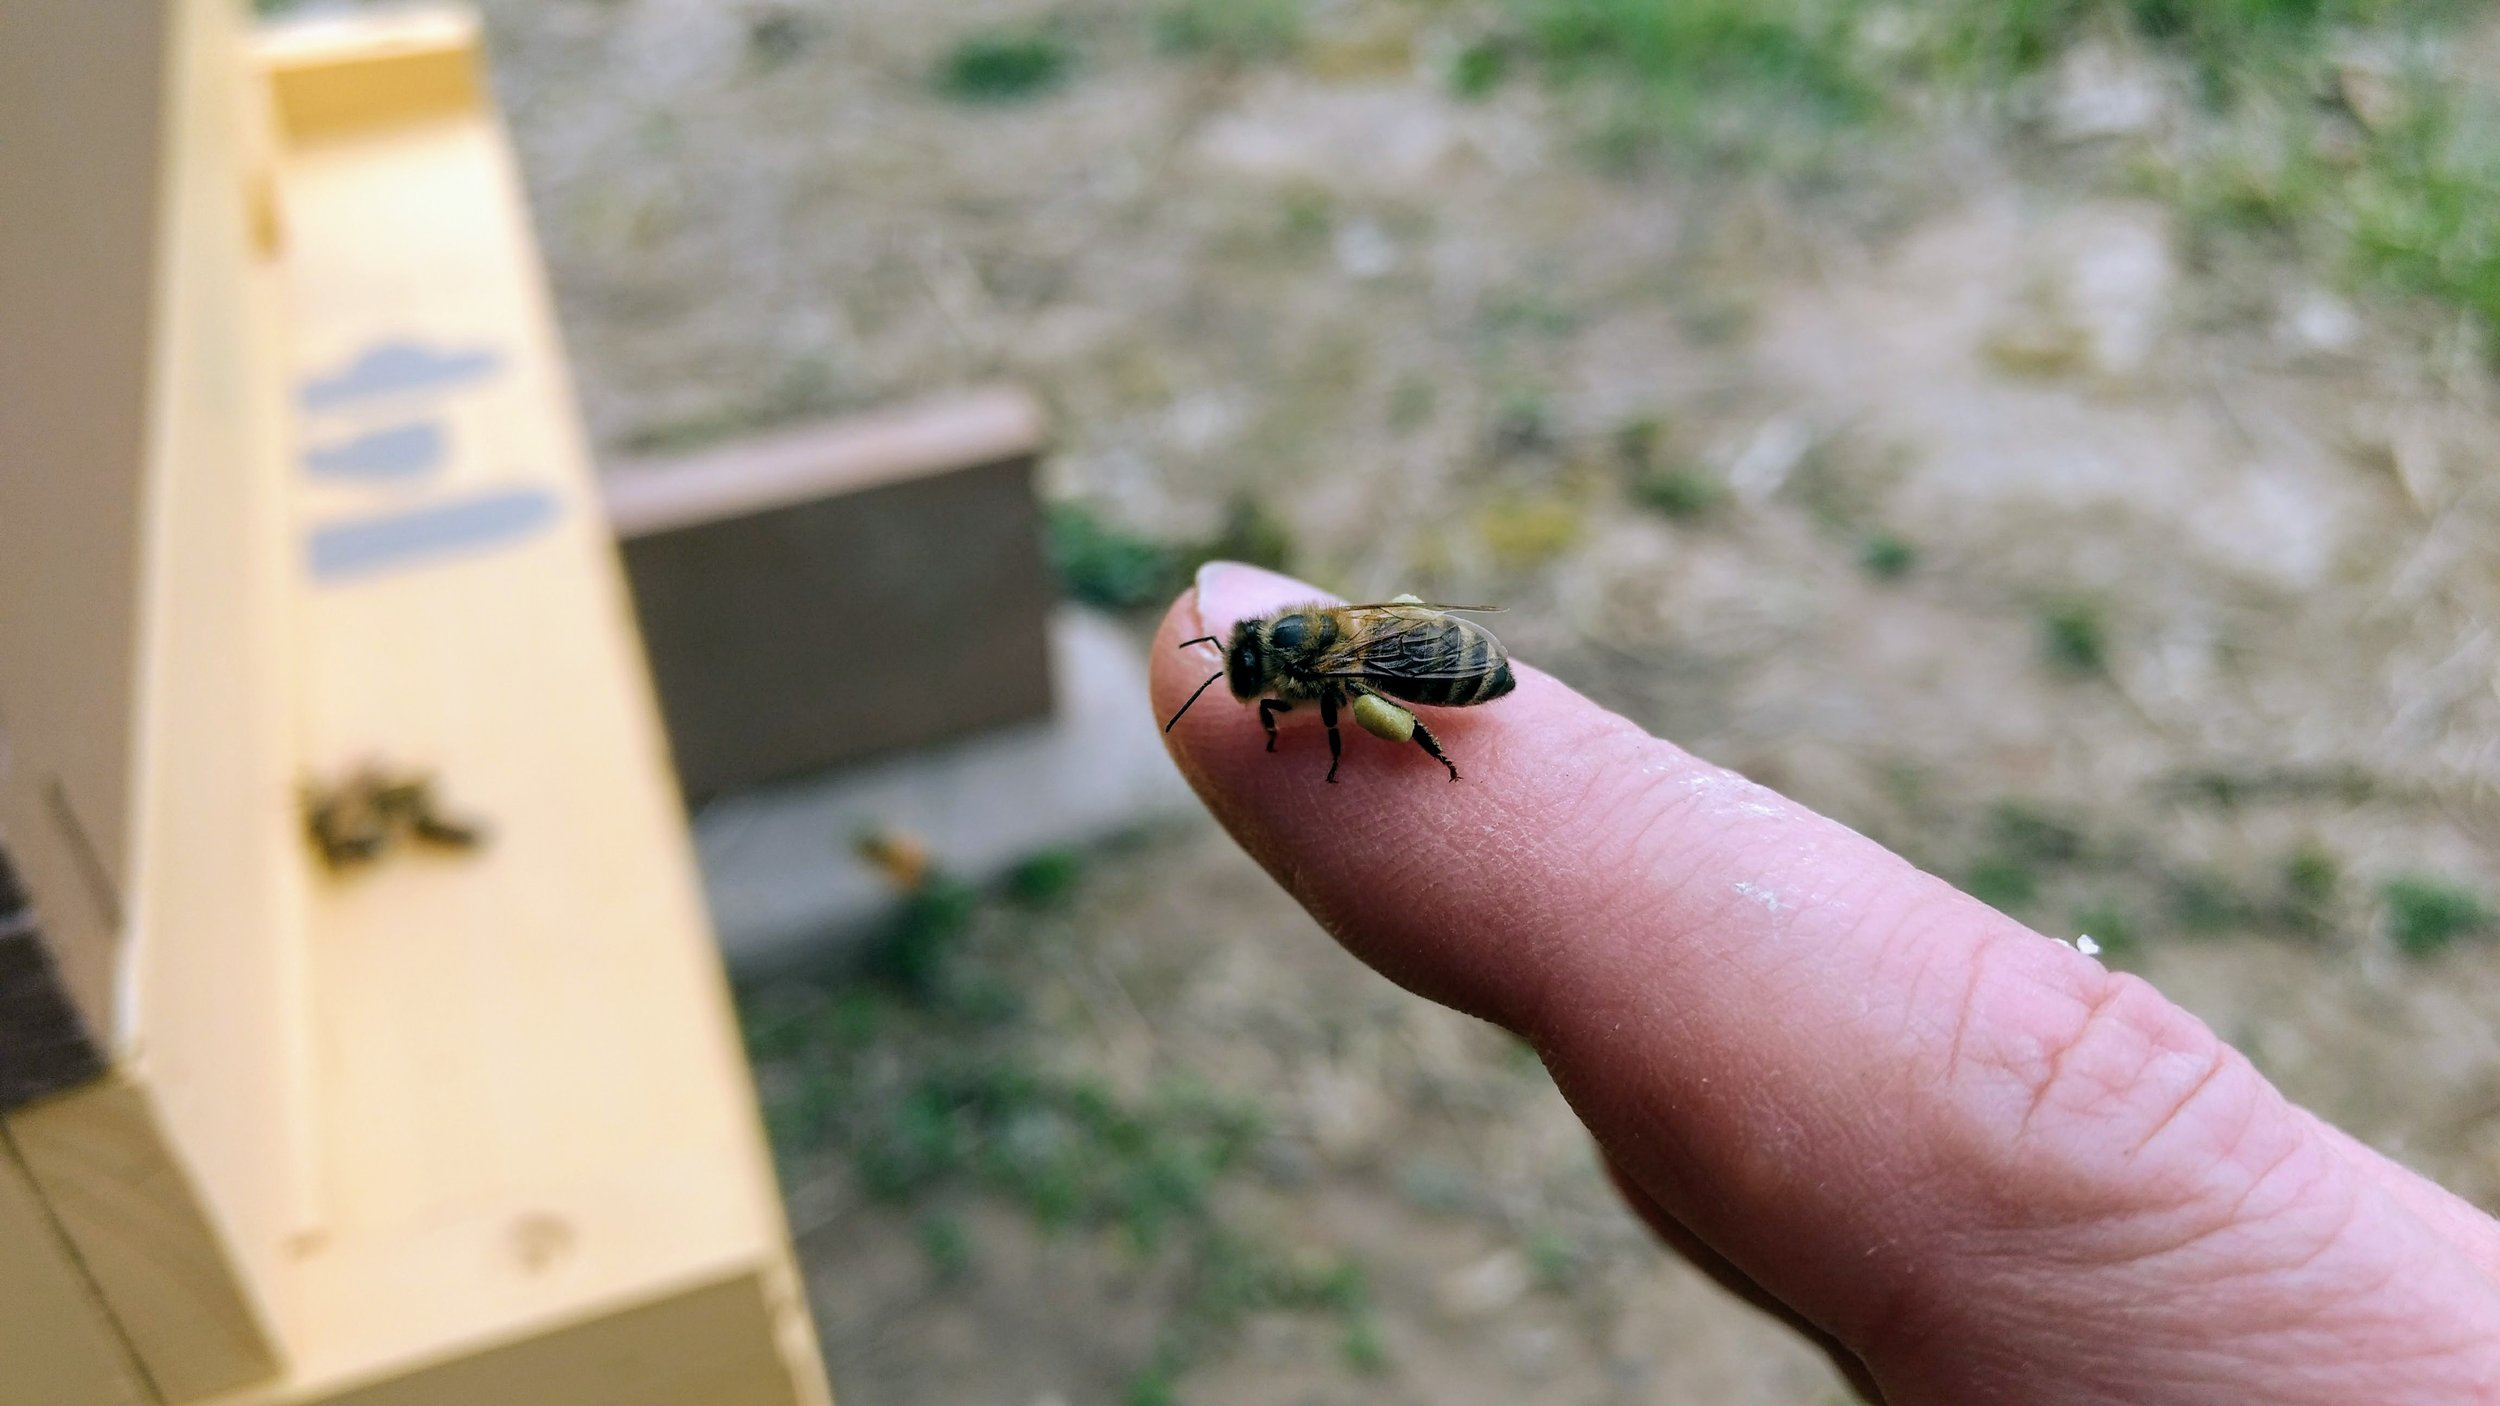 Honey bee alights on my finger with a load of pollen